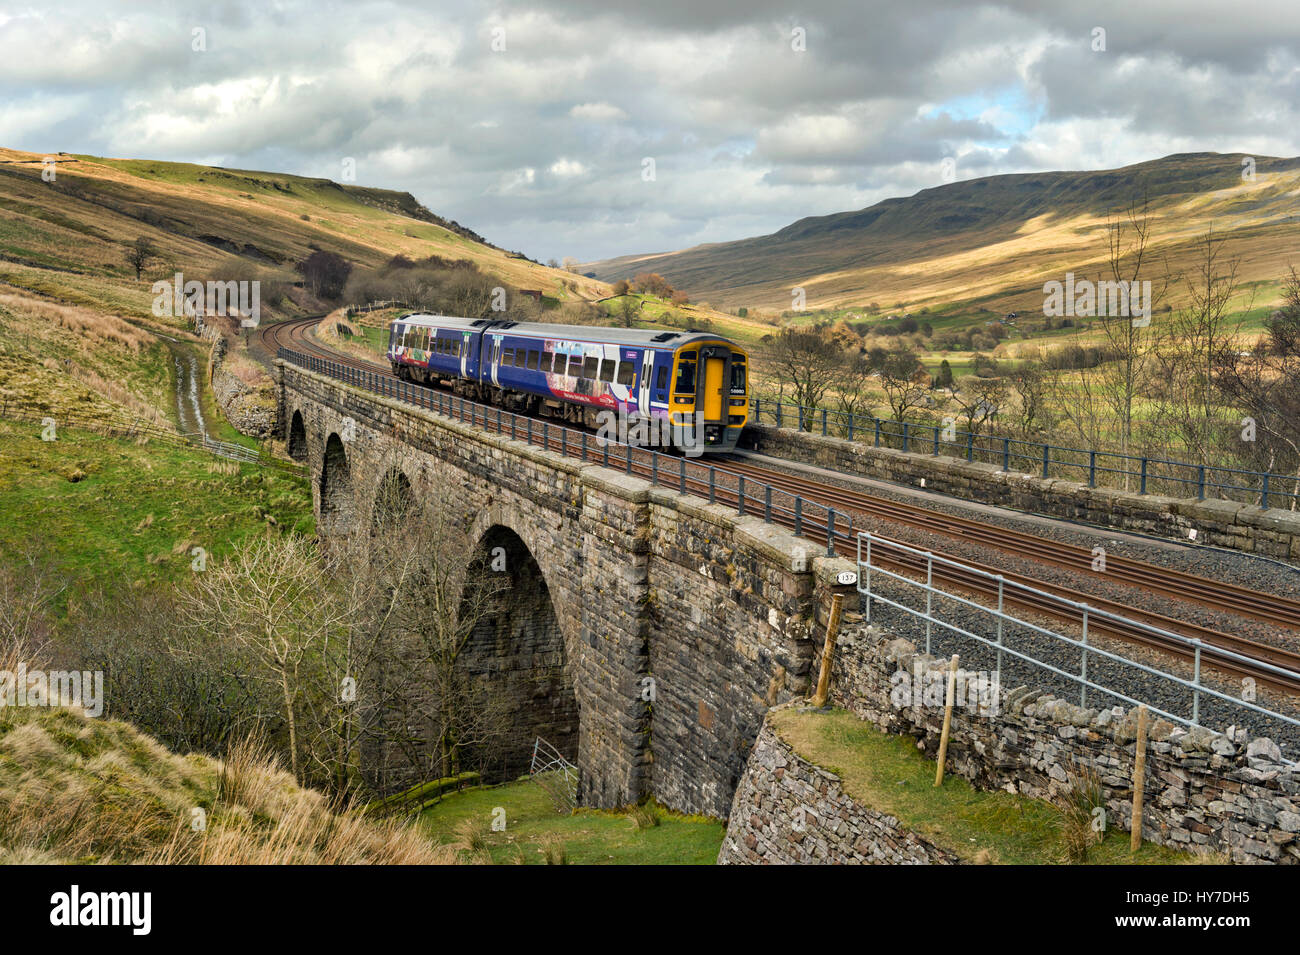 Sprinter train at Ais Gill Viaduct, Mallerstang, Eden Valley, Cumbria, en route to Leeds on the first day of re - Stock Image